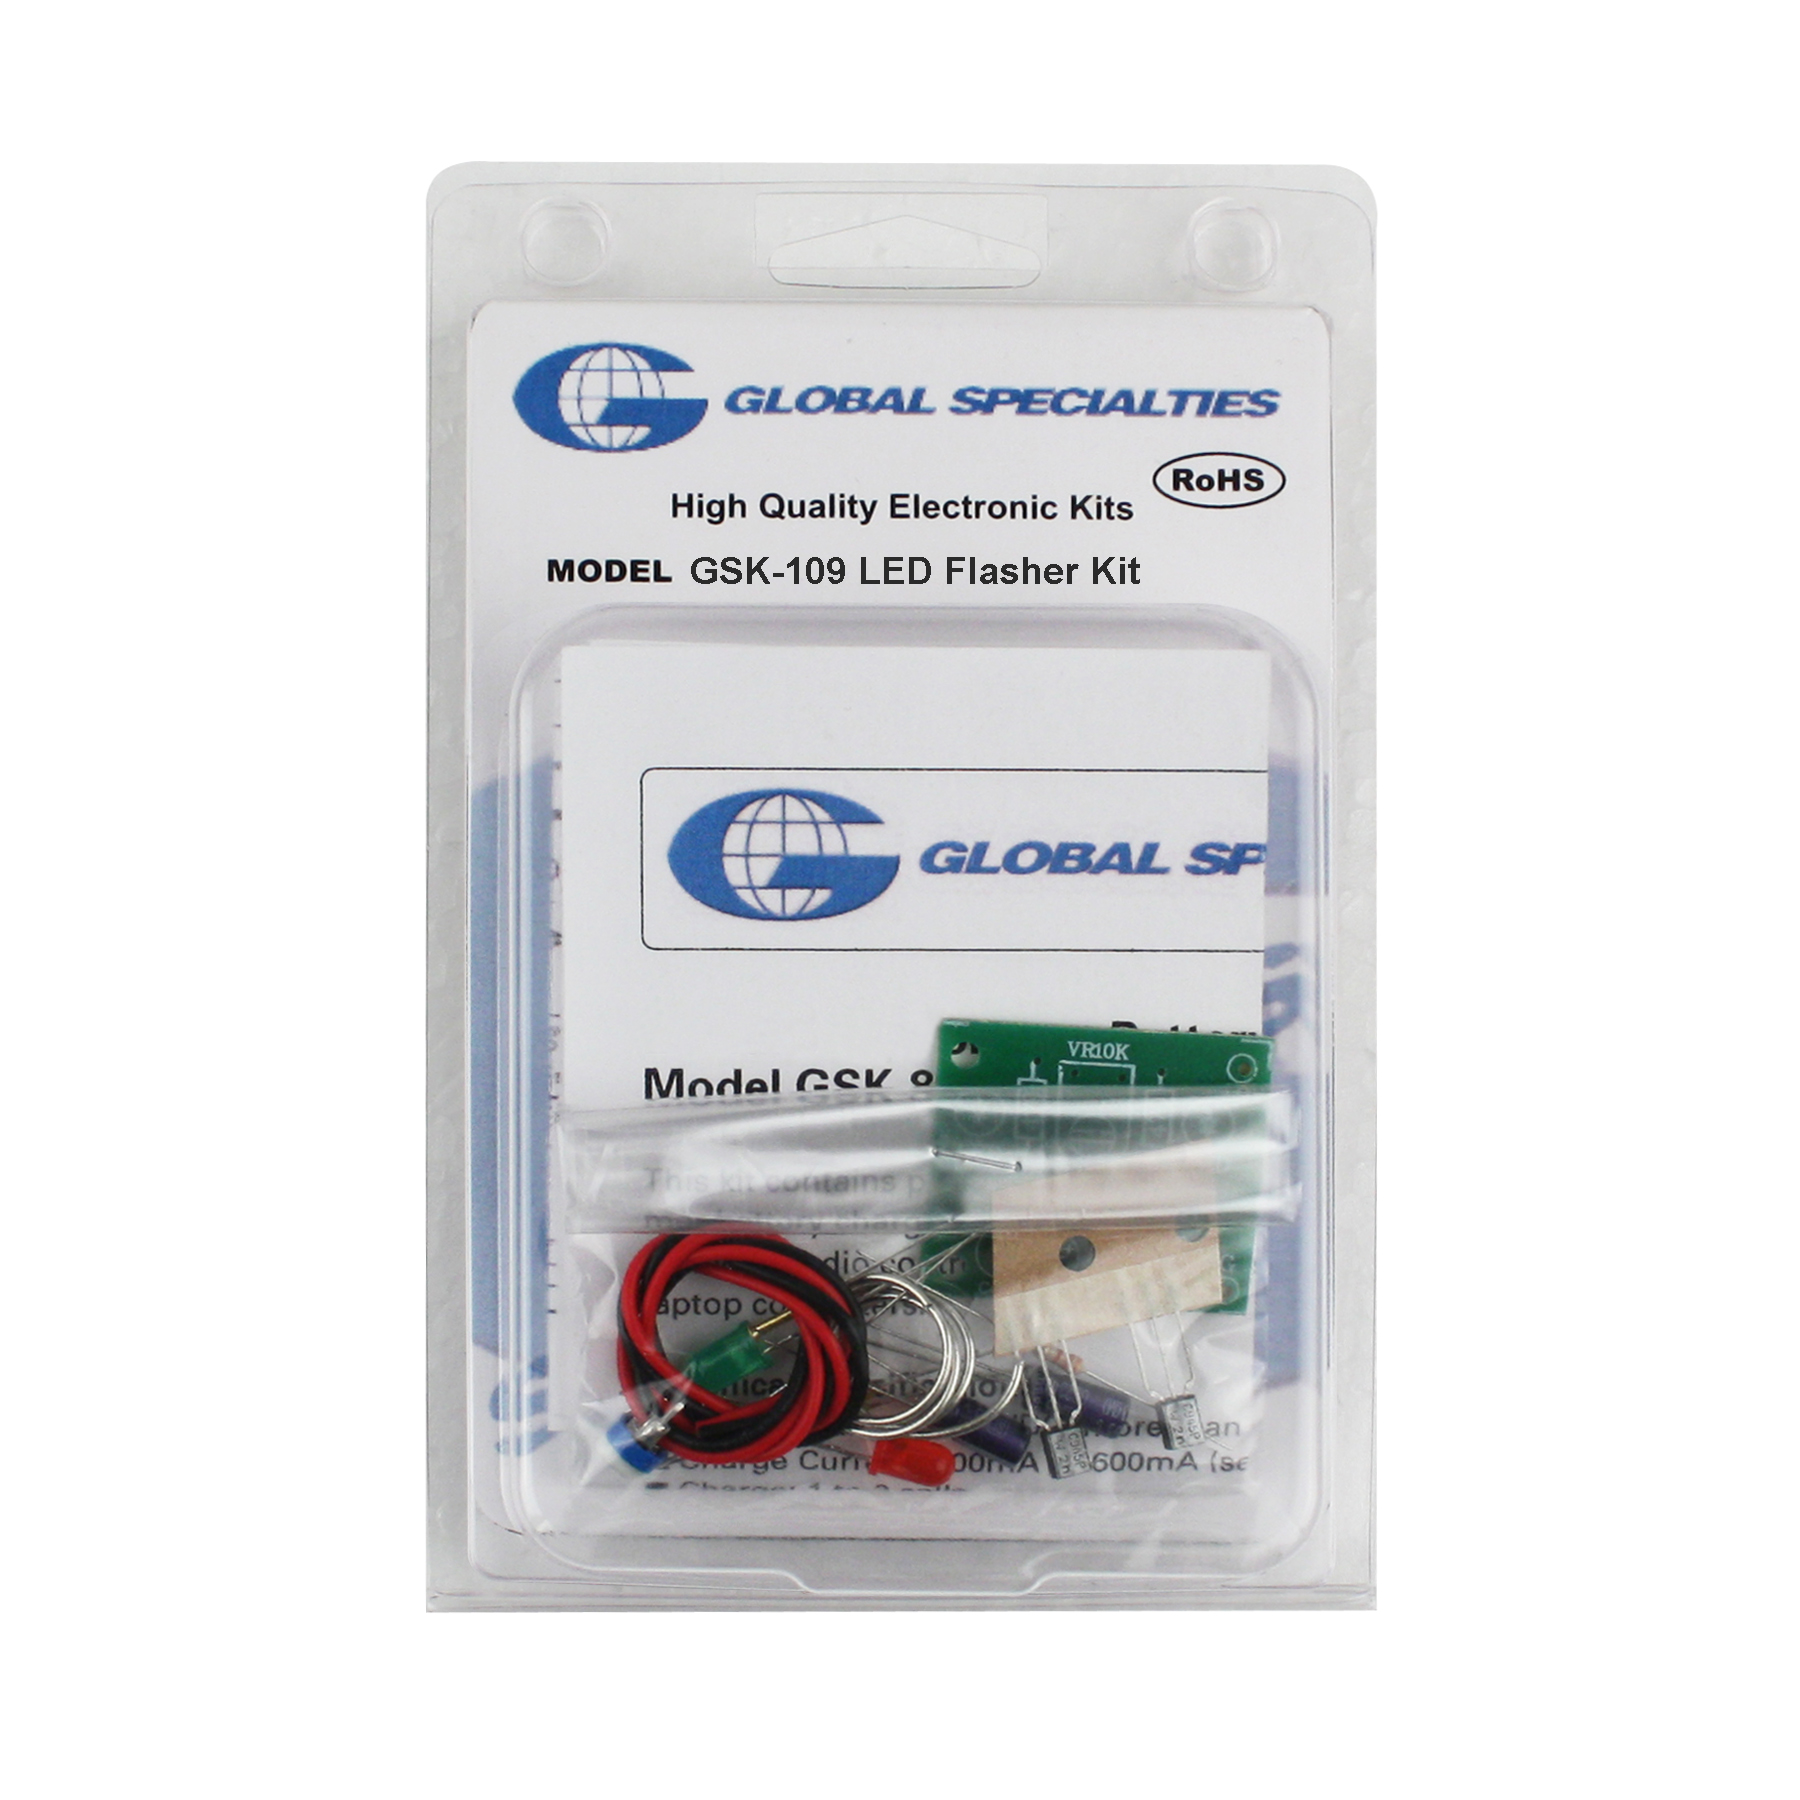 Global Specialties GSK-109 LED Flashing Lights Kit Photo